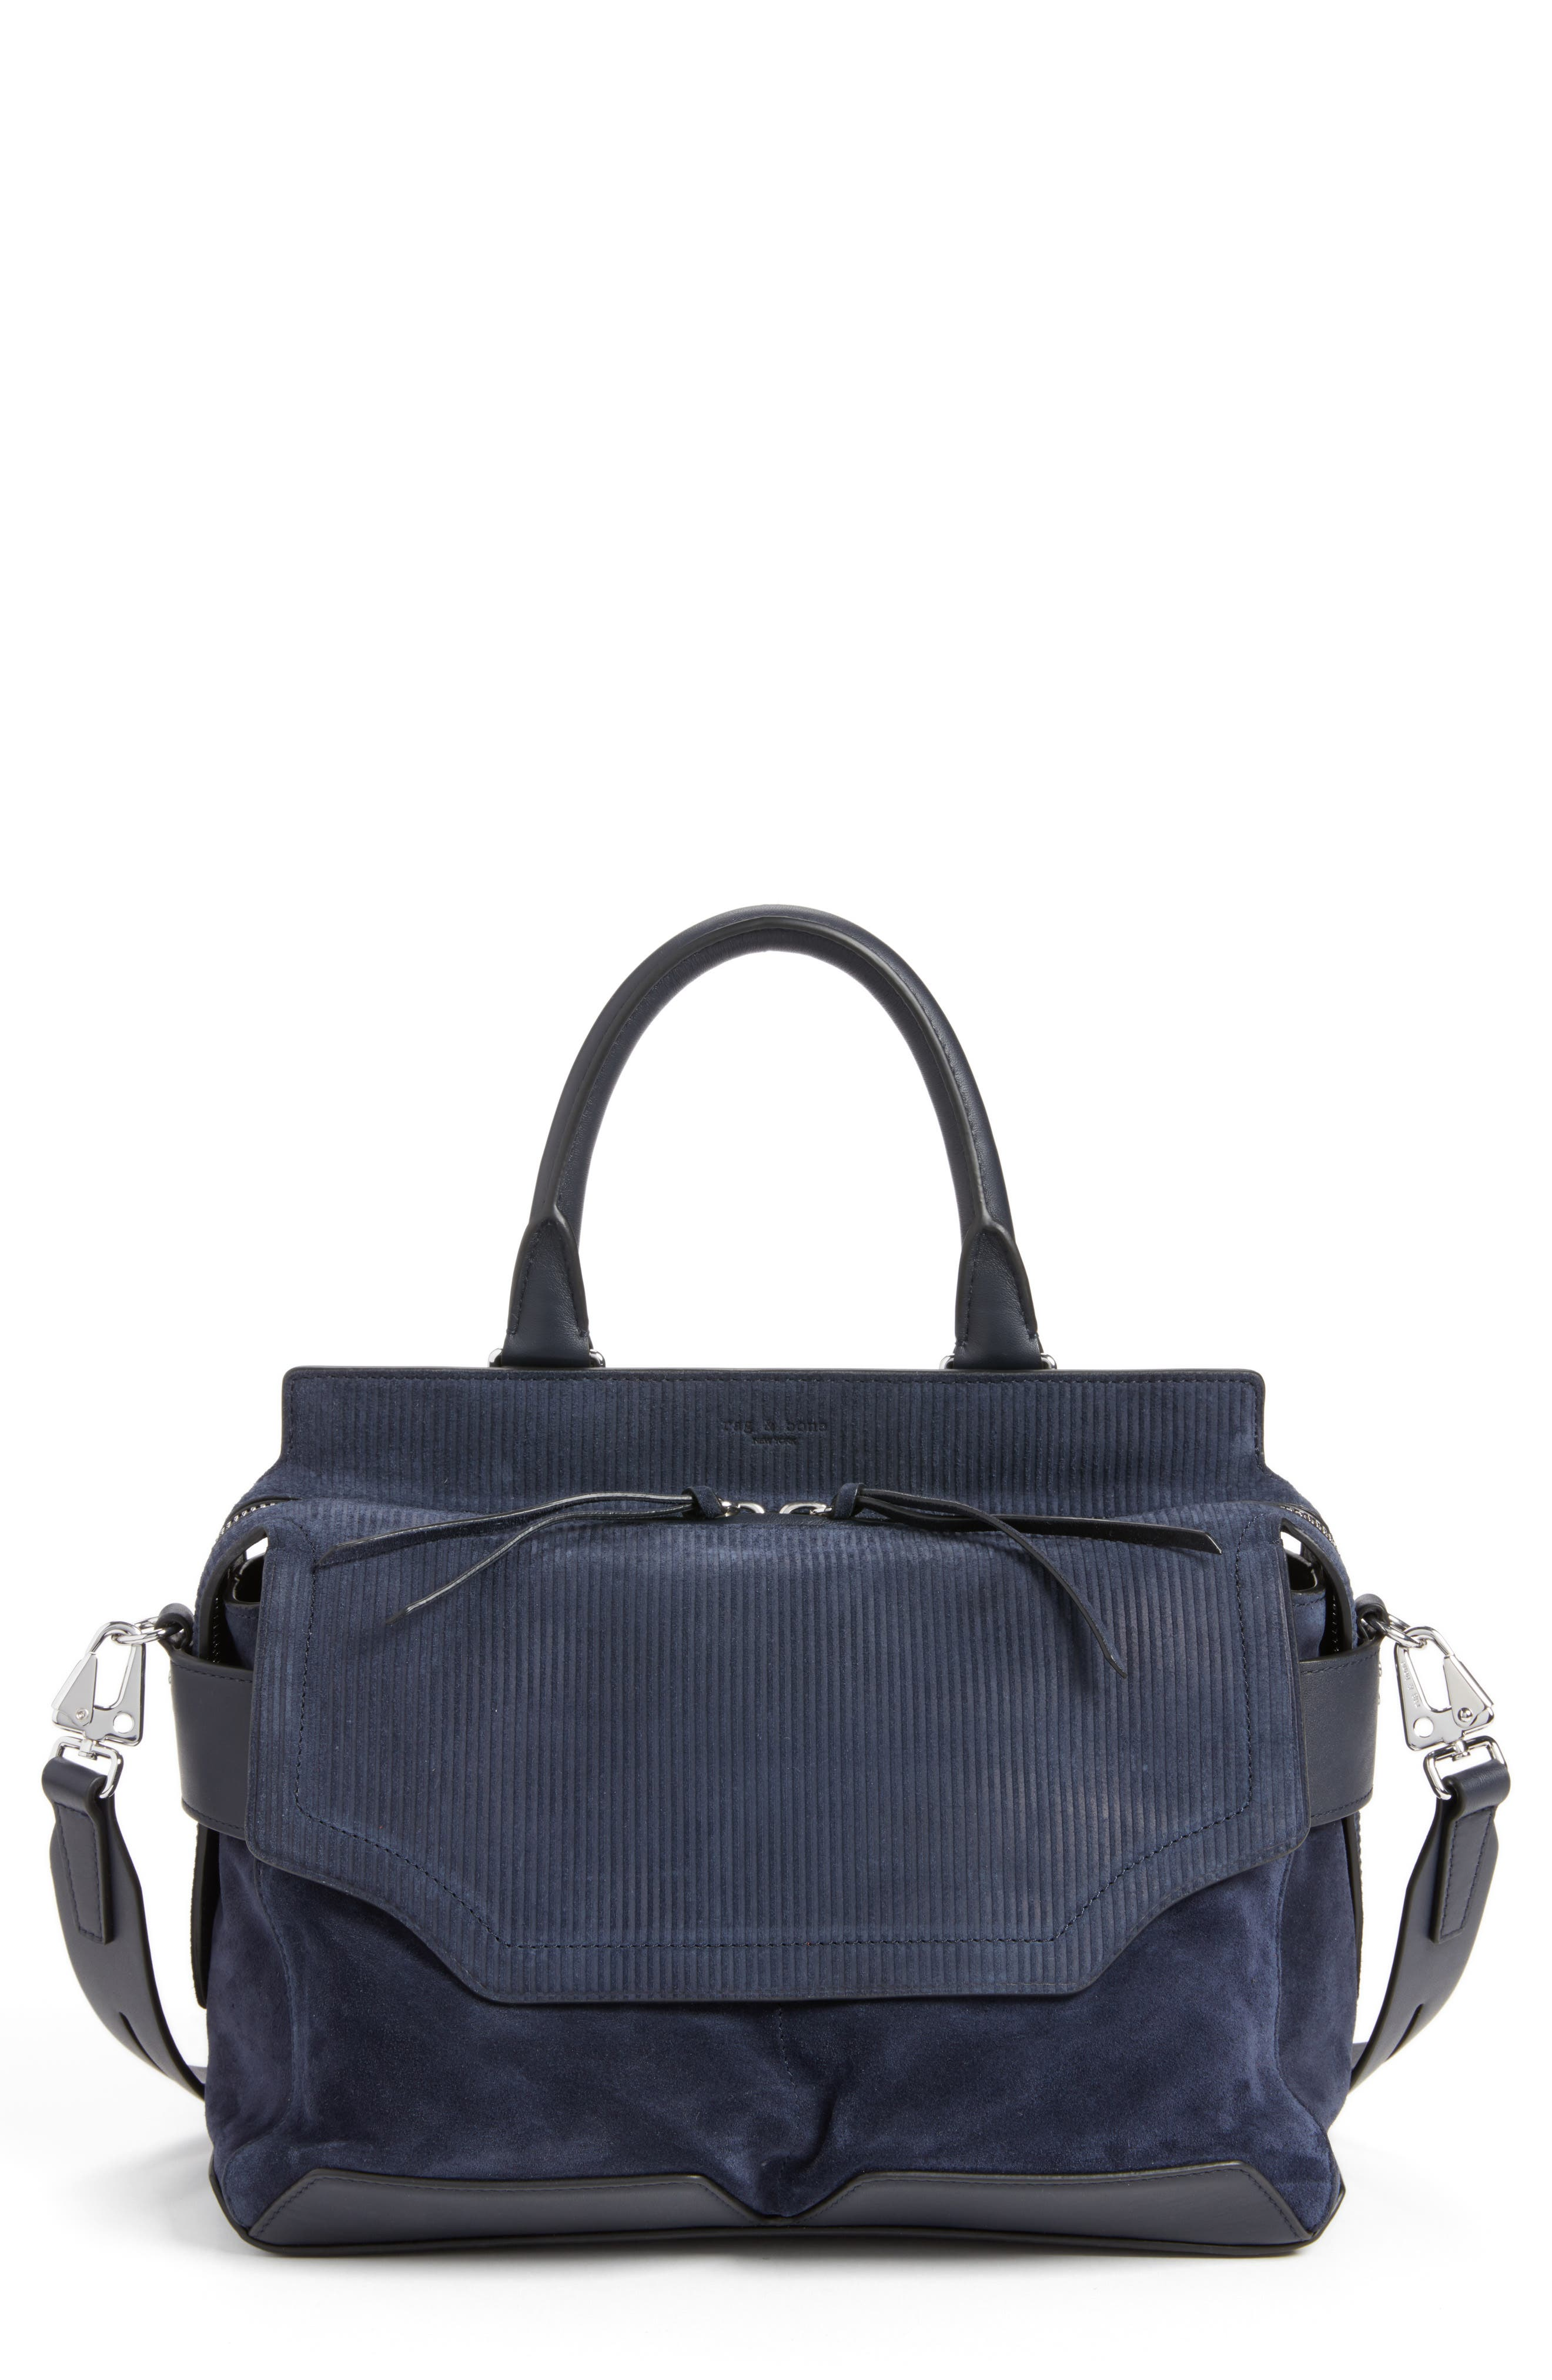 rag & bone Pilot Calfskin Leather Satchel